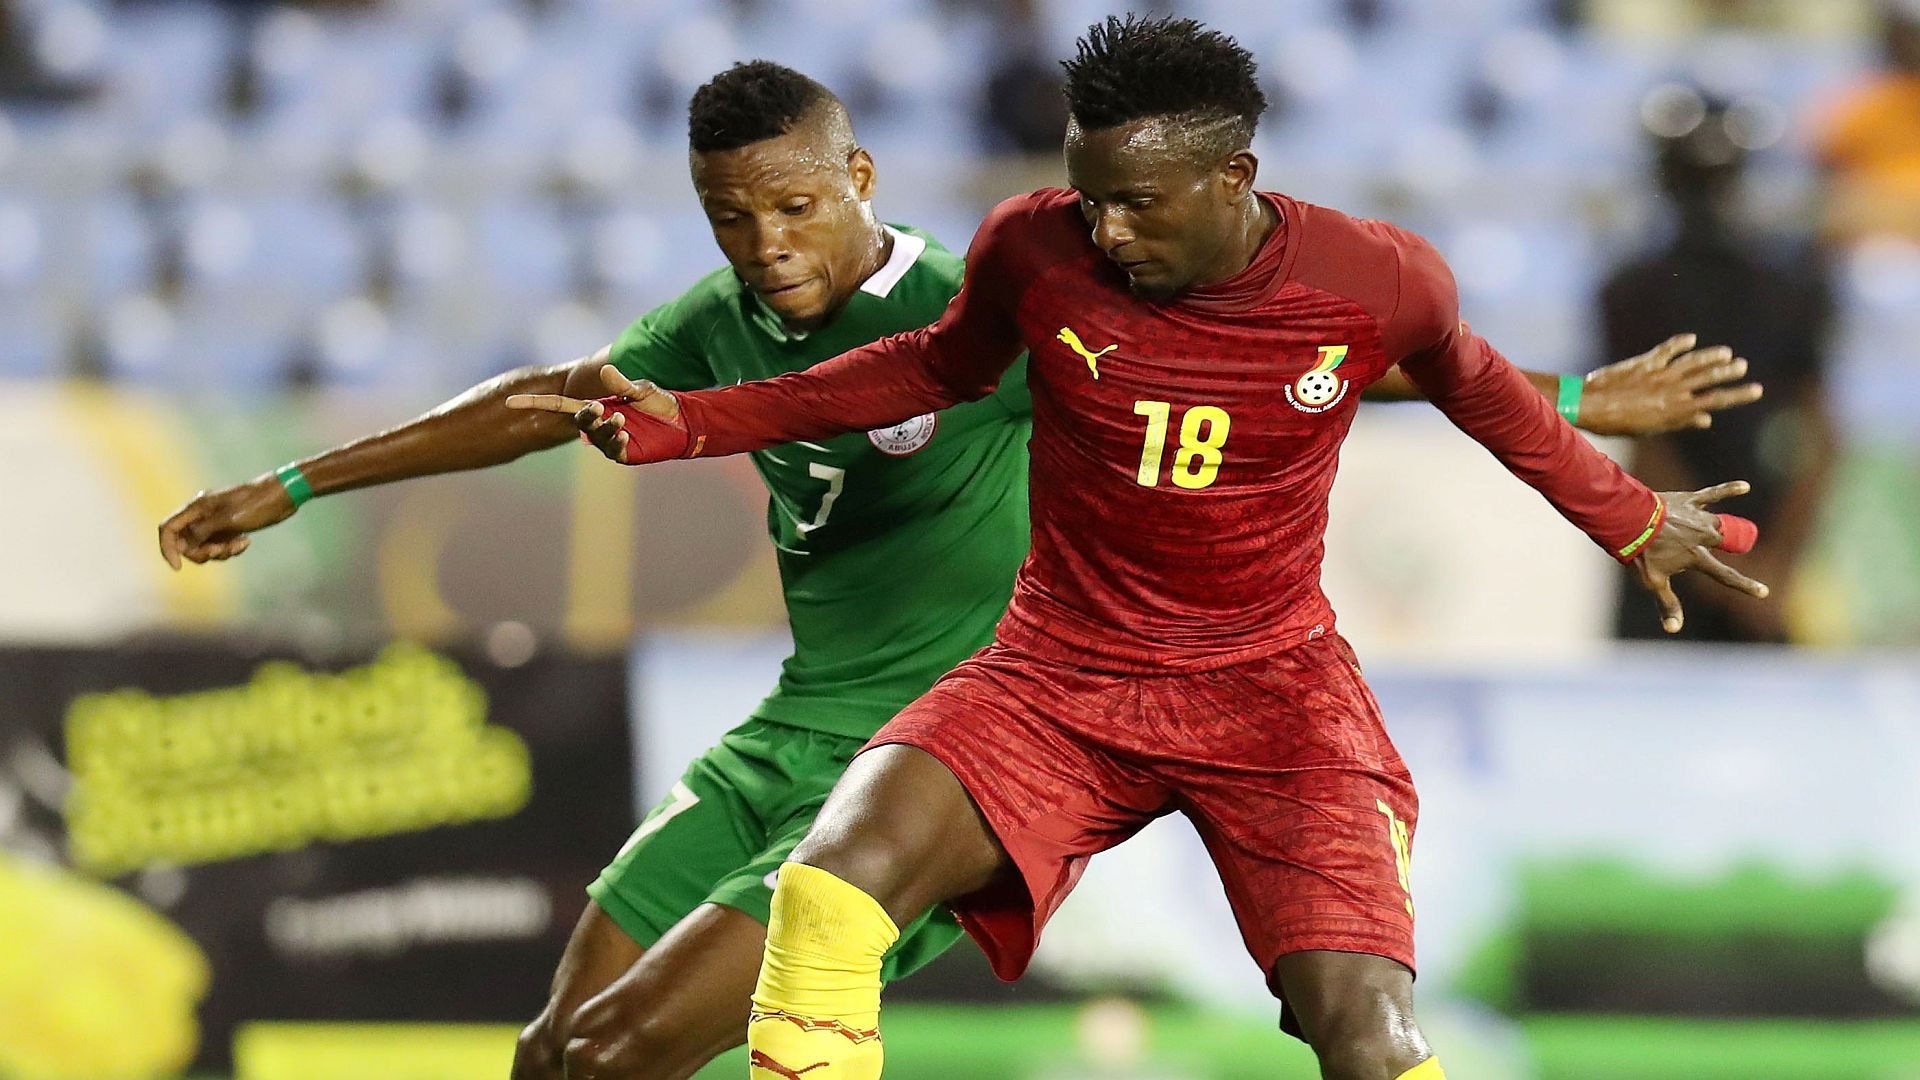 U23 Afcon: Lomotey and Sarpong talk up Ghana's ambitions ahead of Cameroon opener